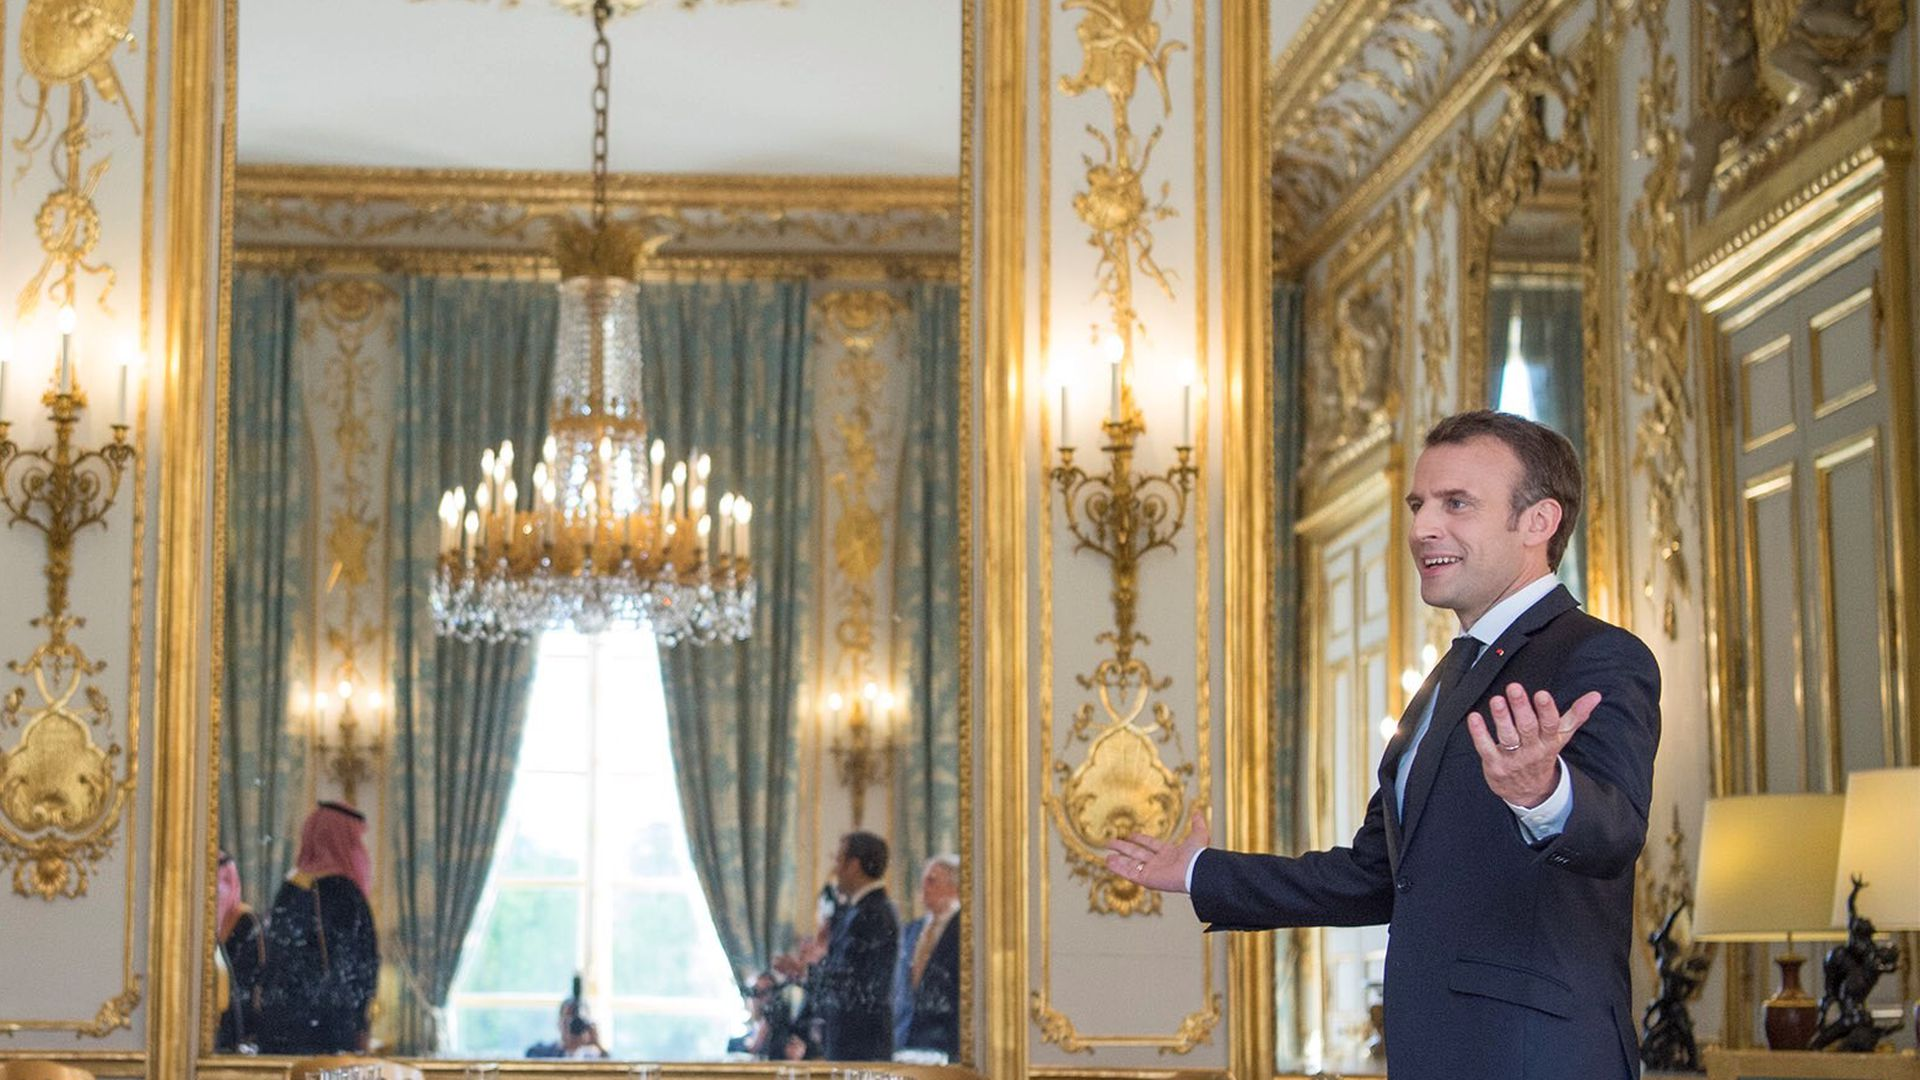 Macron in a palace dining room